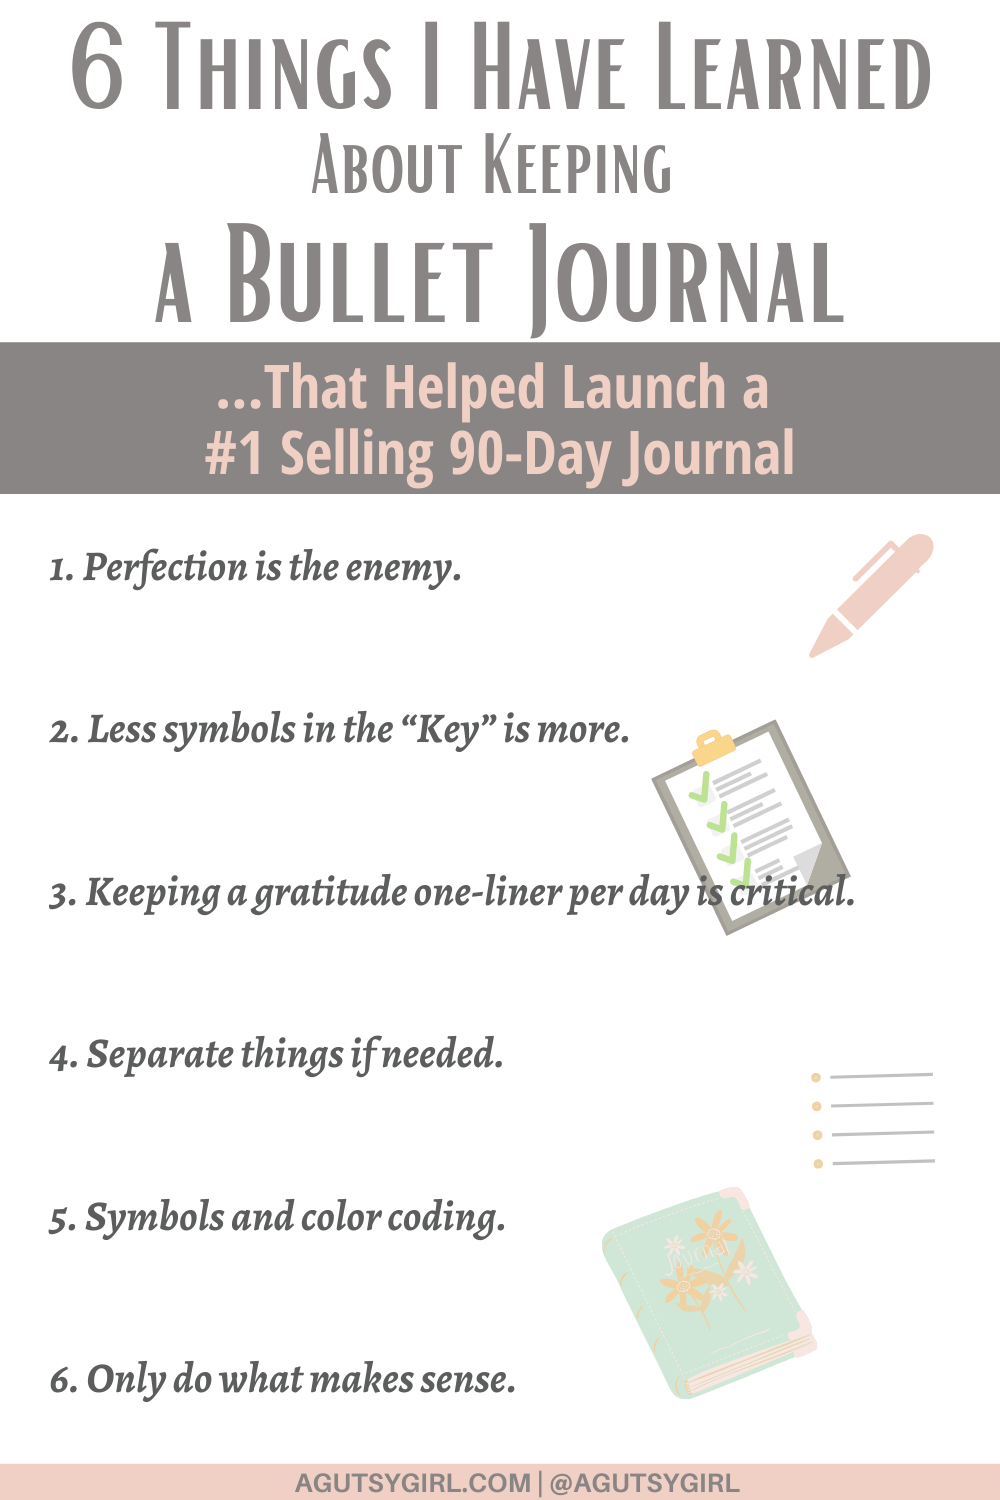 6 Things I Have Learned About Keeping a Bullet Journal agutsygirl.com #bulletjournal #bujo #gratitudejournal